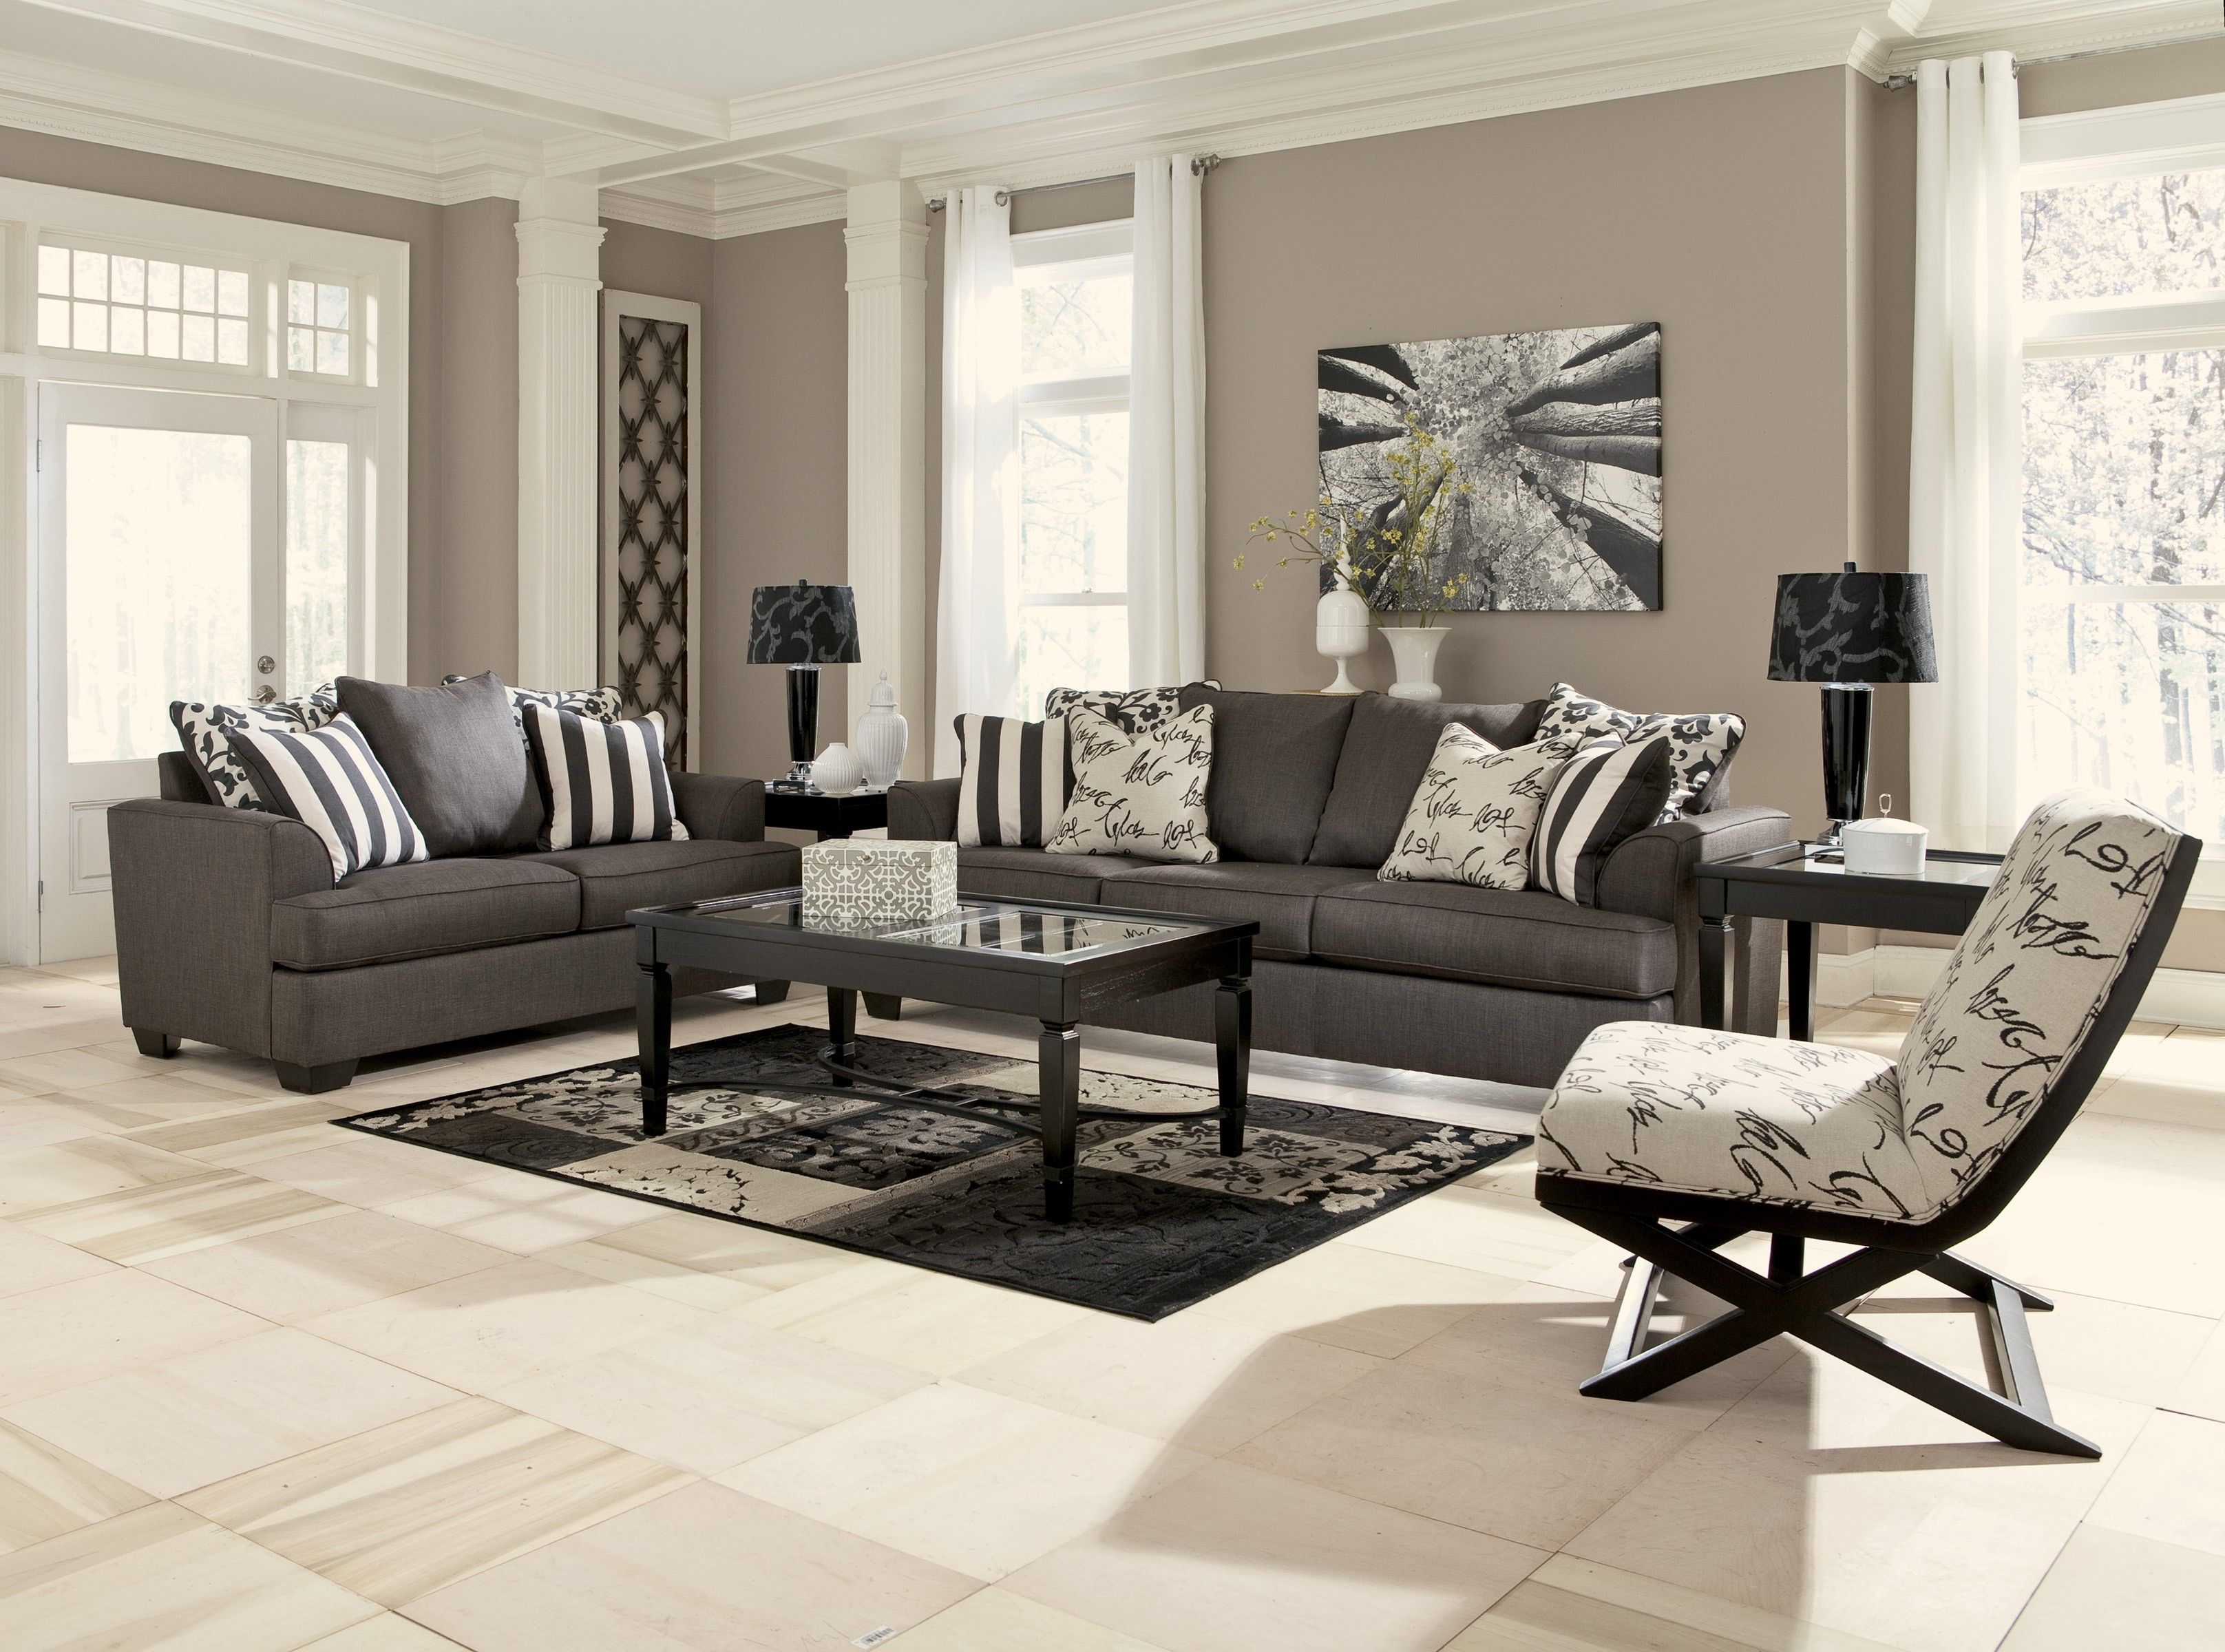 rooms italian furniture contemporary sets room modern drapes sofas living for